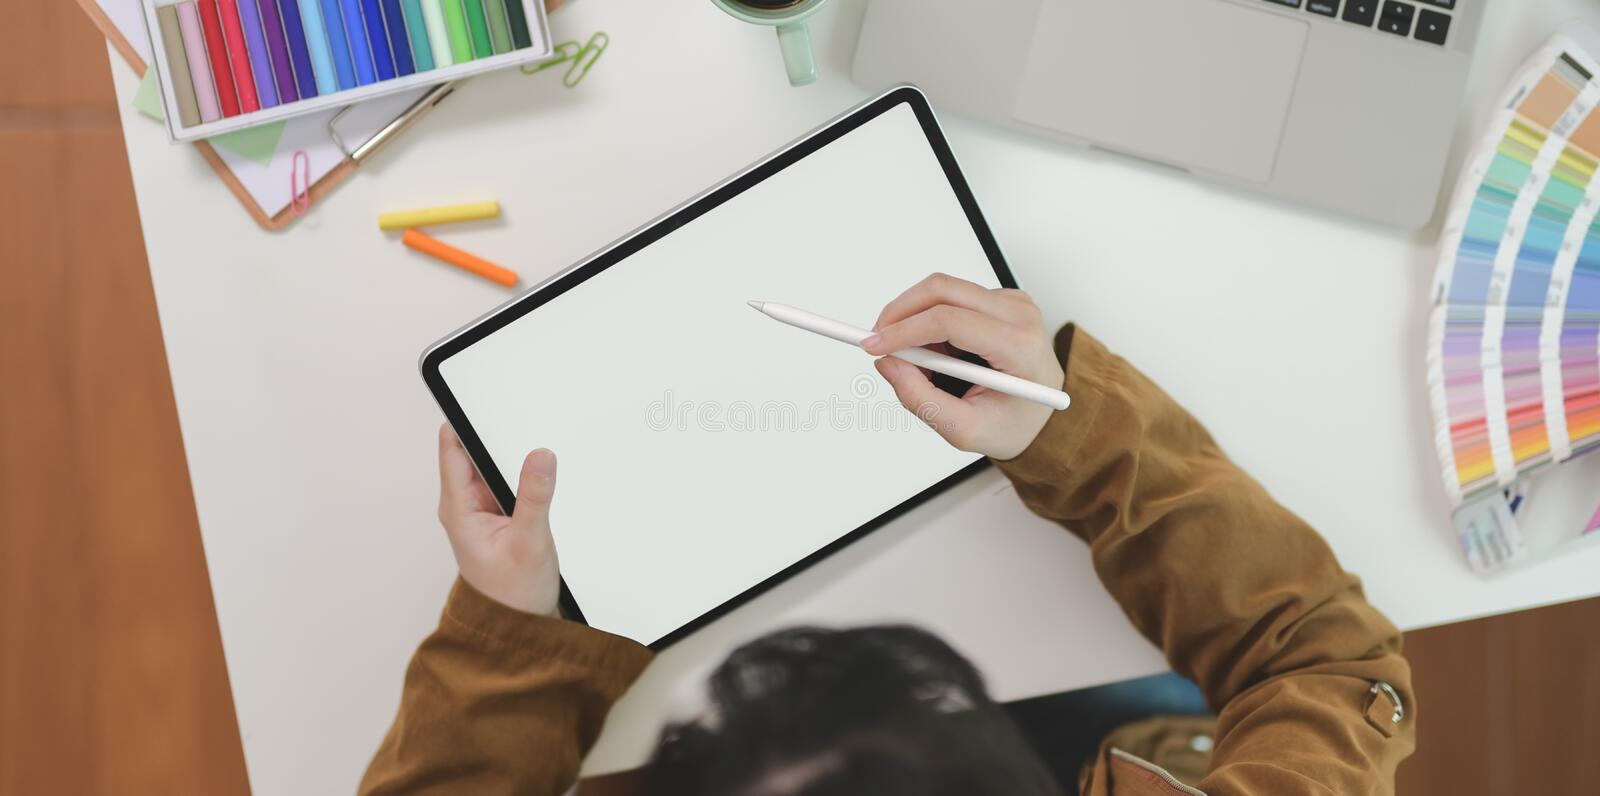 Top view of female graphic designer sketching on tablet stock images